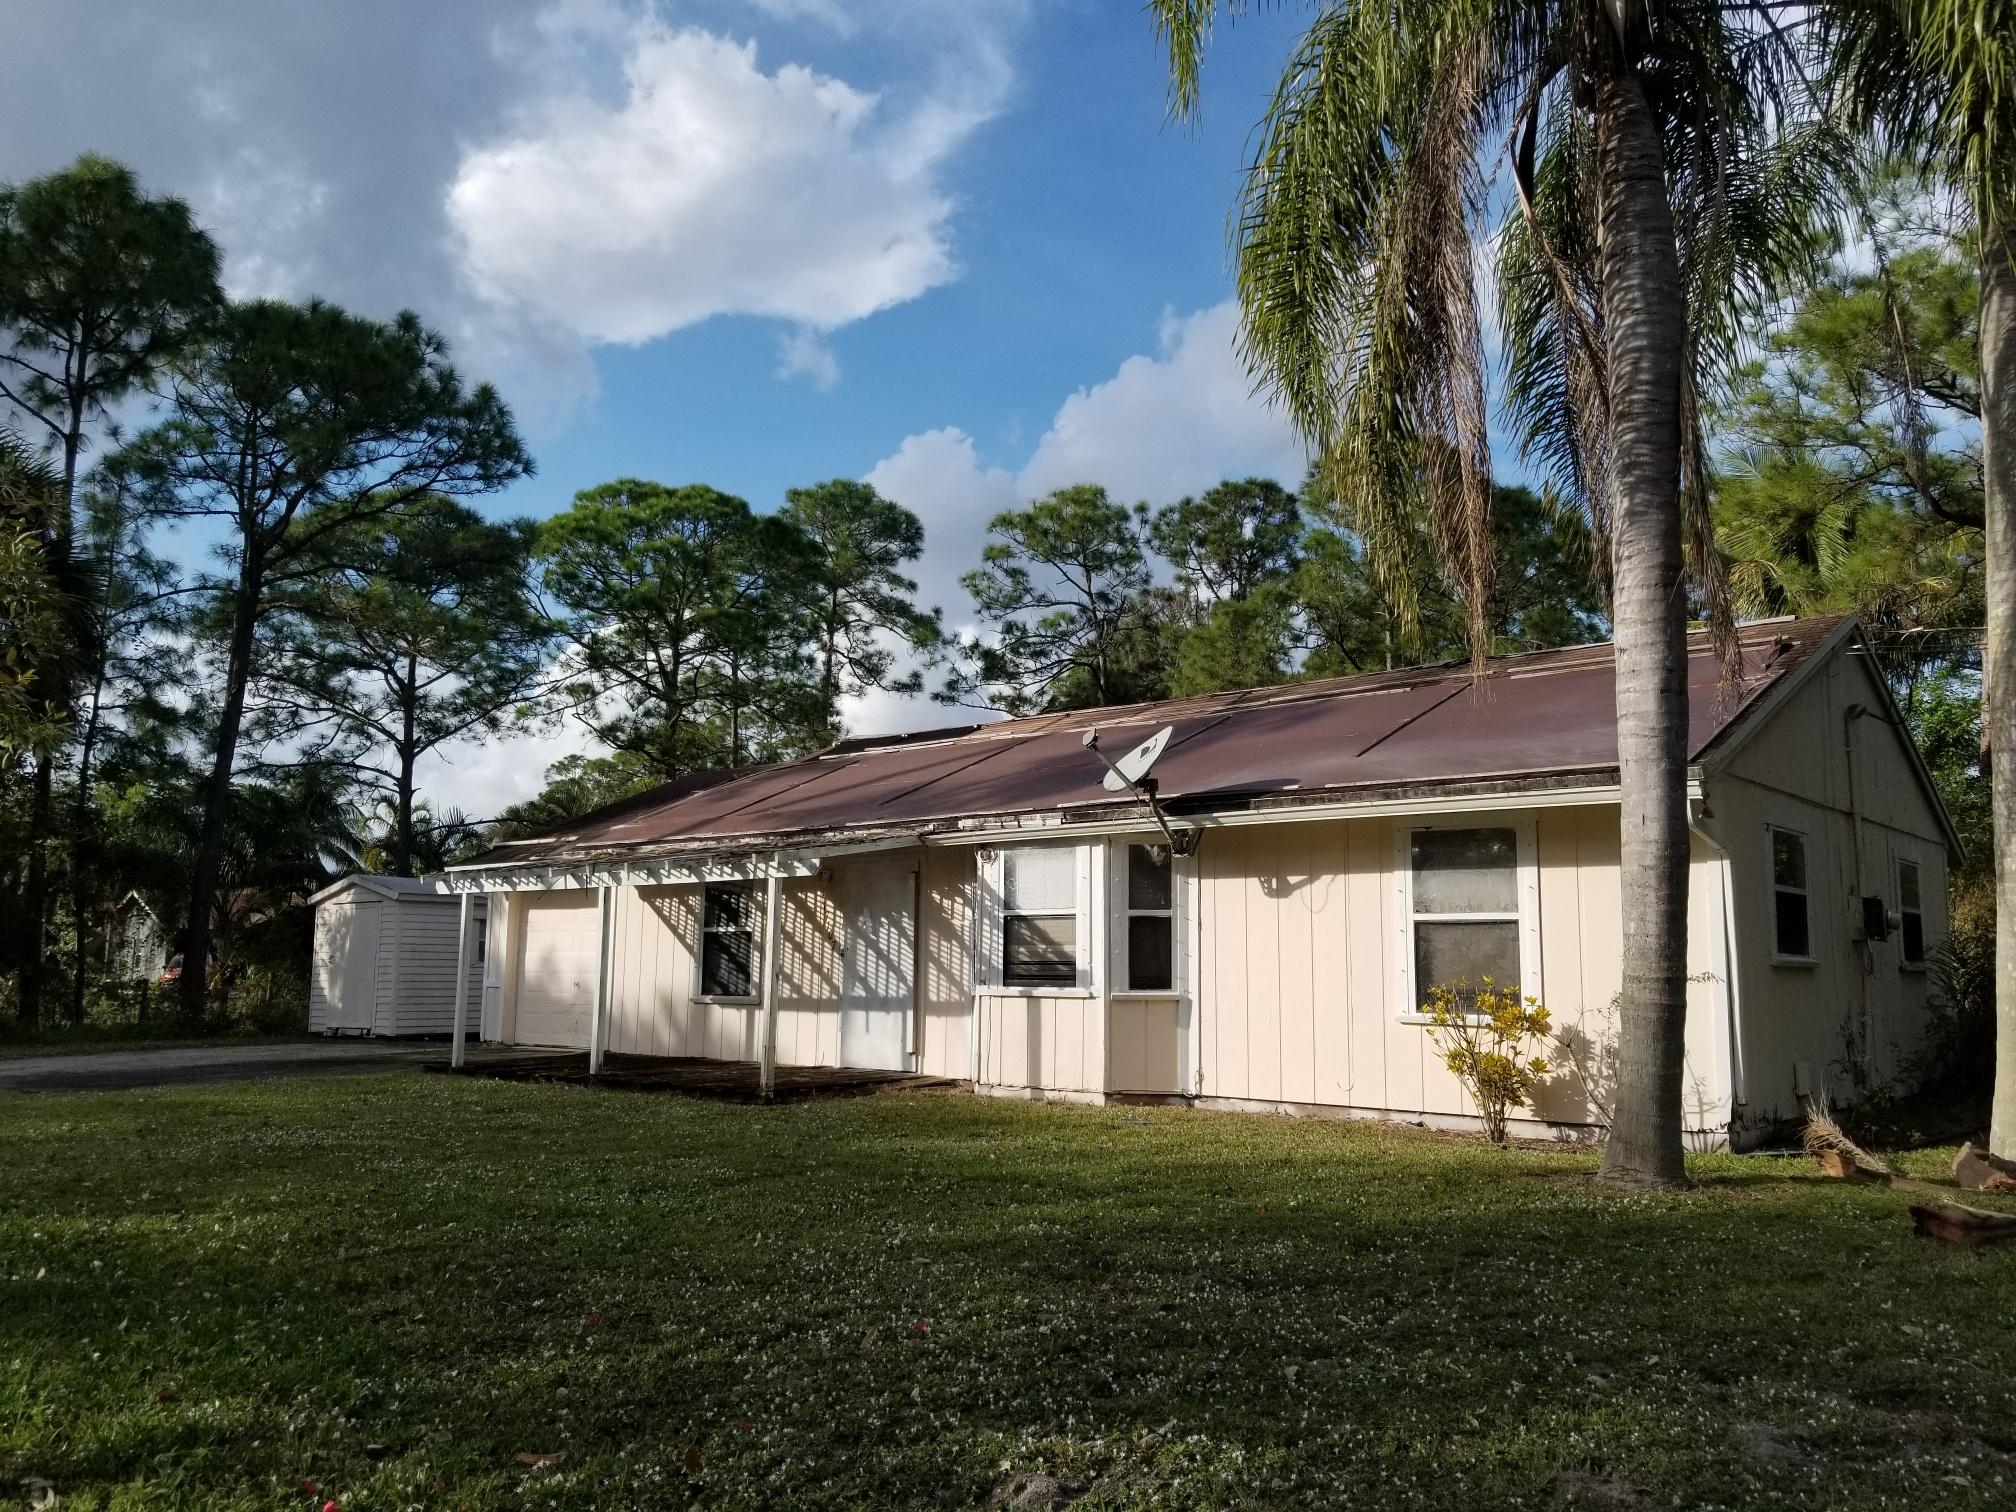 Home for sale in Acreage The Acreage Florida